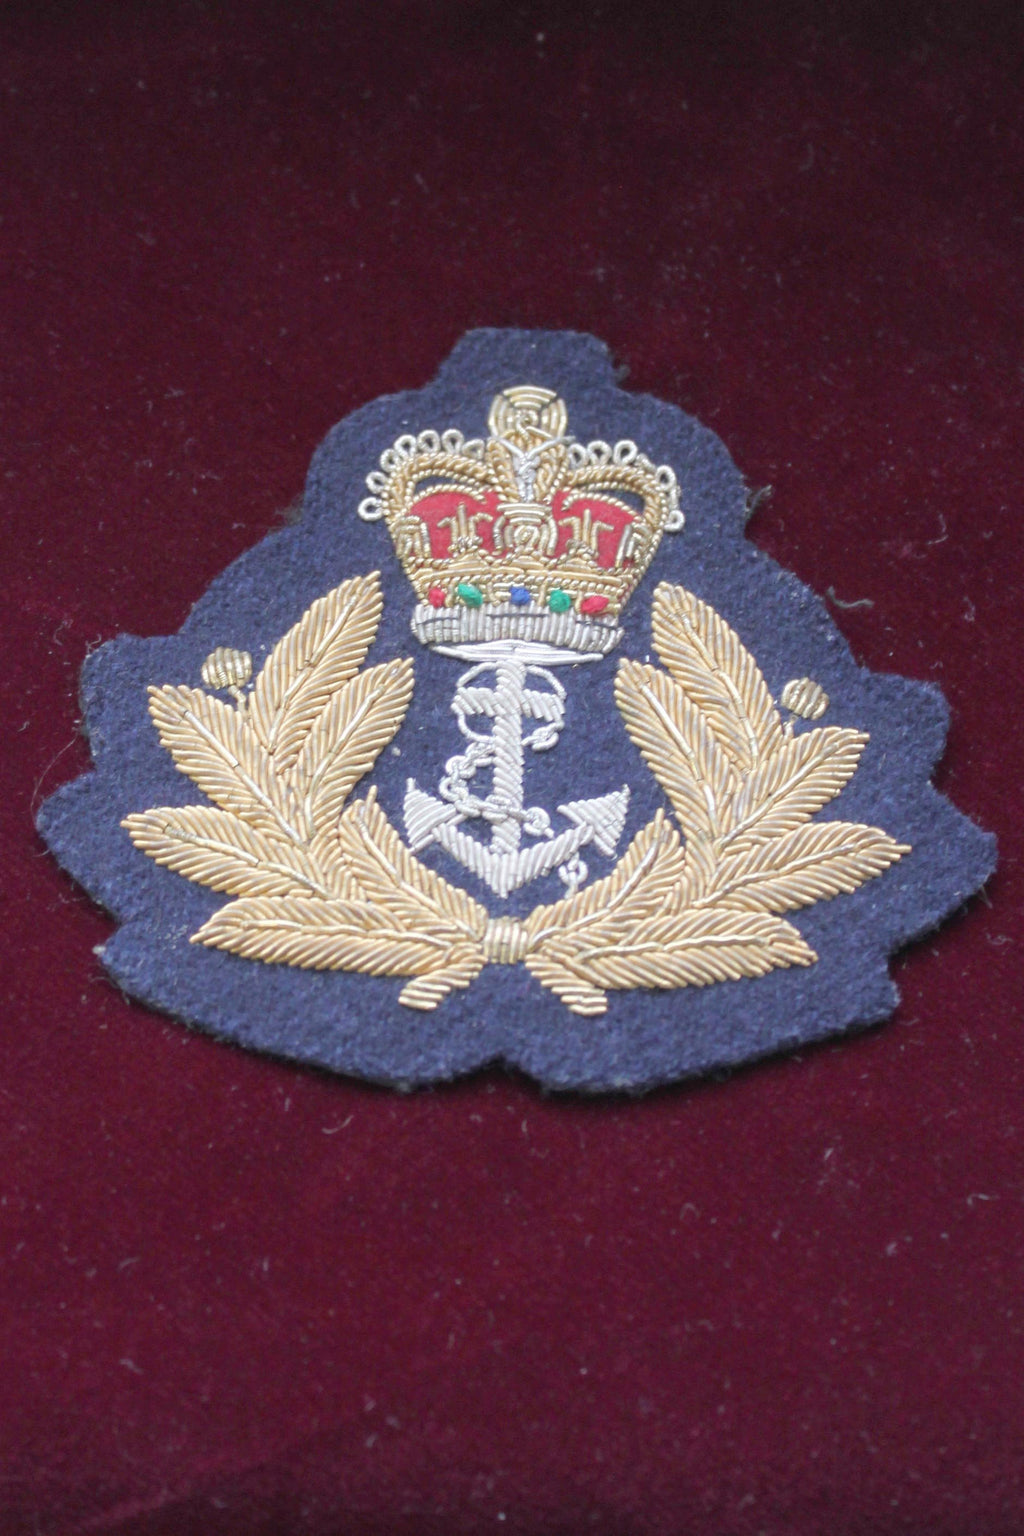 Royal Navy Warrant Officer Blazer Badge